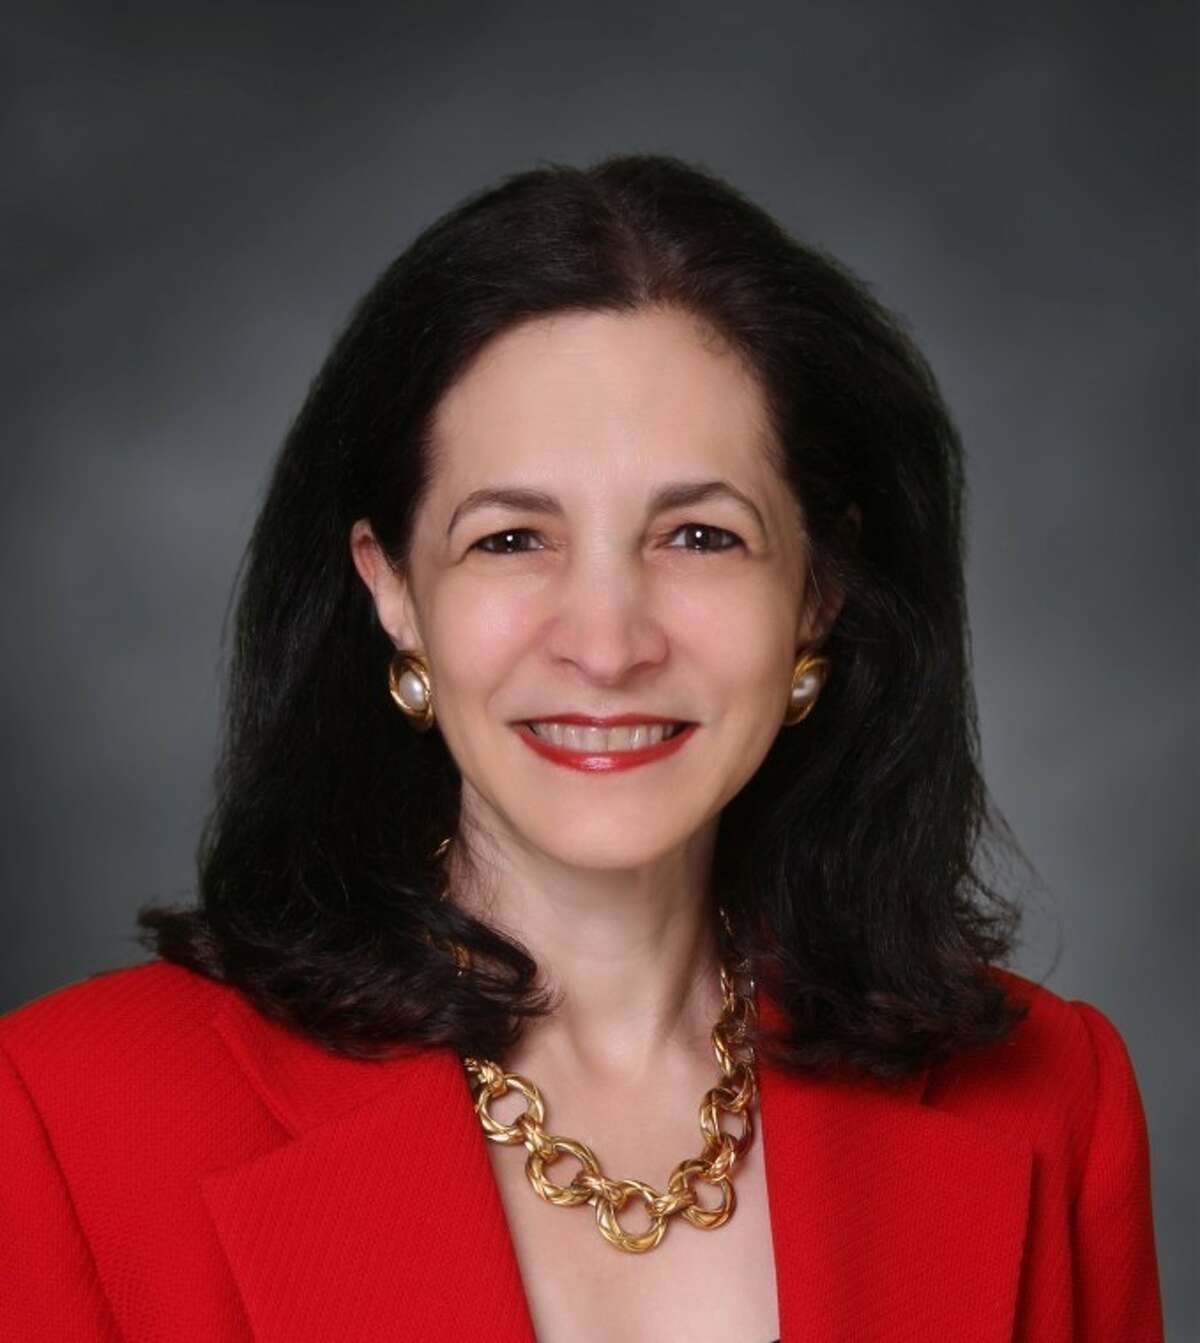 State Rep. Gail Lavielle, R-143. Contributed photo.